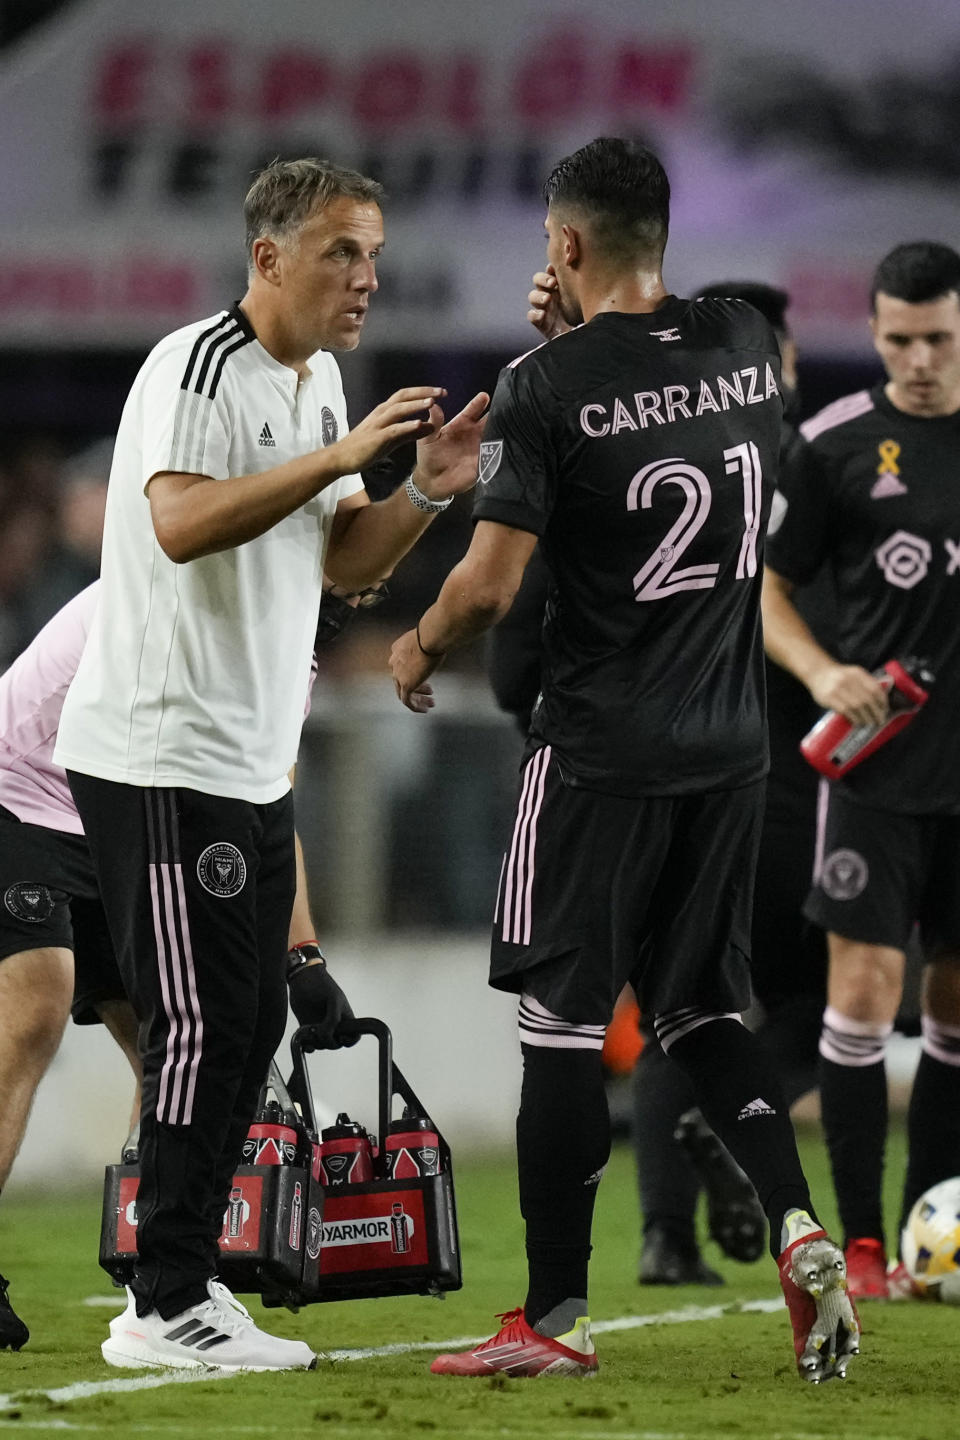 Inter Miami head coach Phil Neville talks to Inter Miami forward Julian Carranza on the sidelines during the second half of an MLS soccer match against Nashville, Wednesday, Sept. 22, 2021, in Fort Lauderdale, Fla. (AP Photo/Rebecca Blackwell)